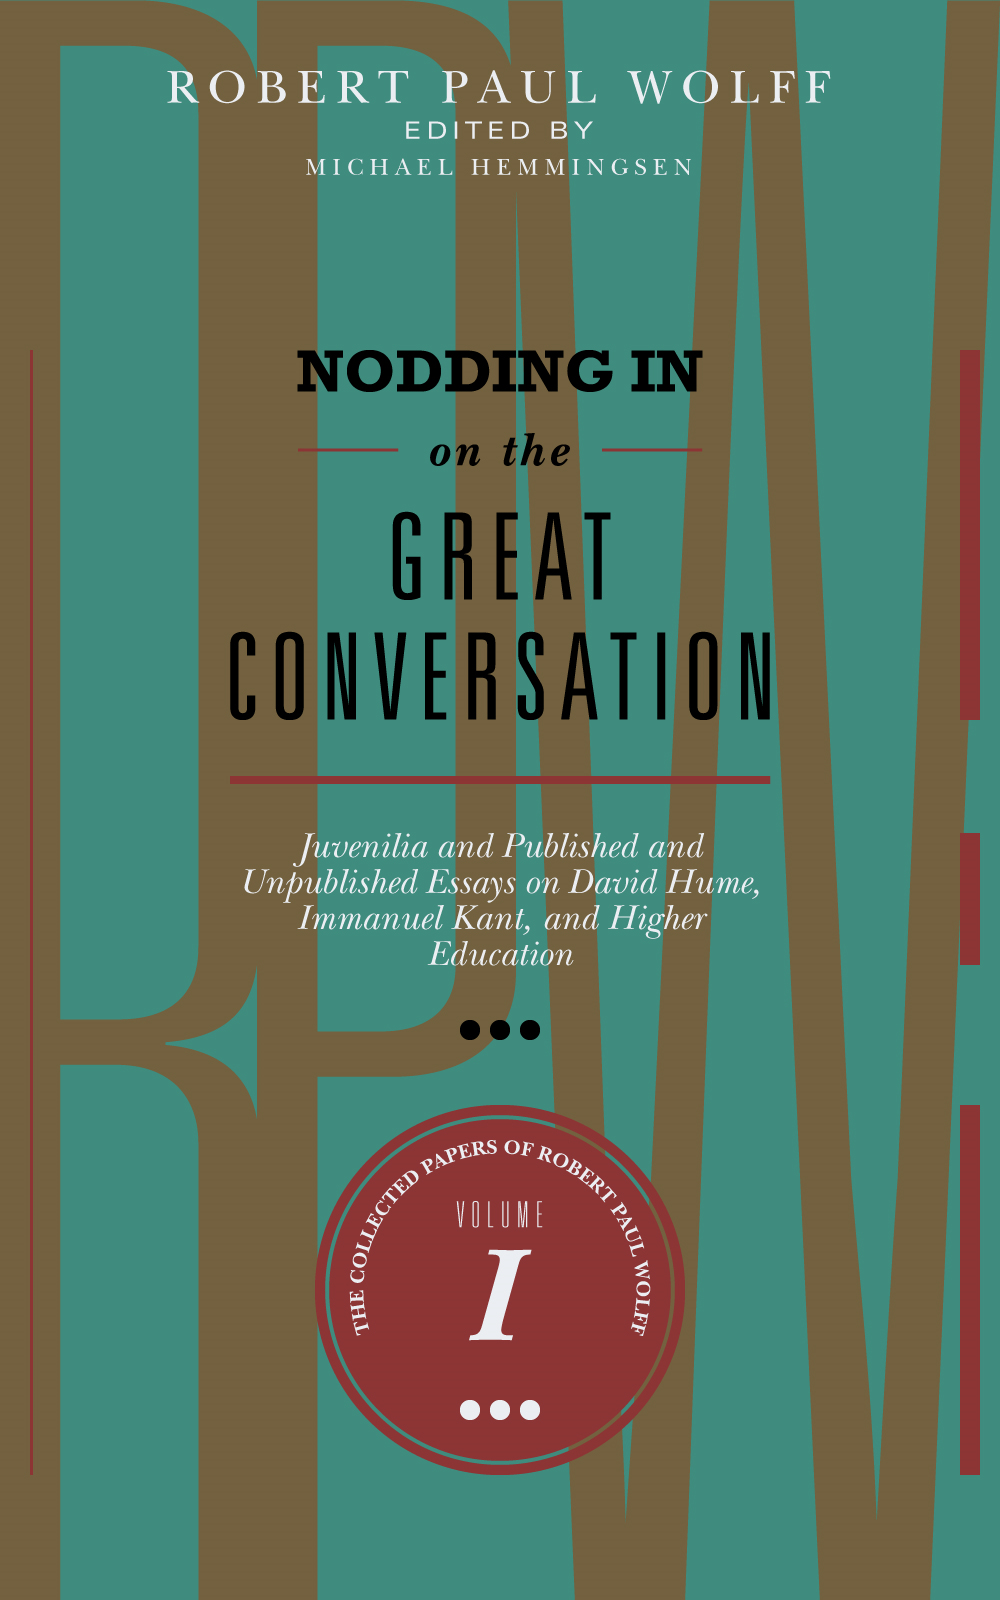 Robert Paul Wolff - Nodding In On The Great Conversation